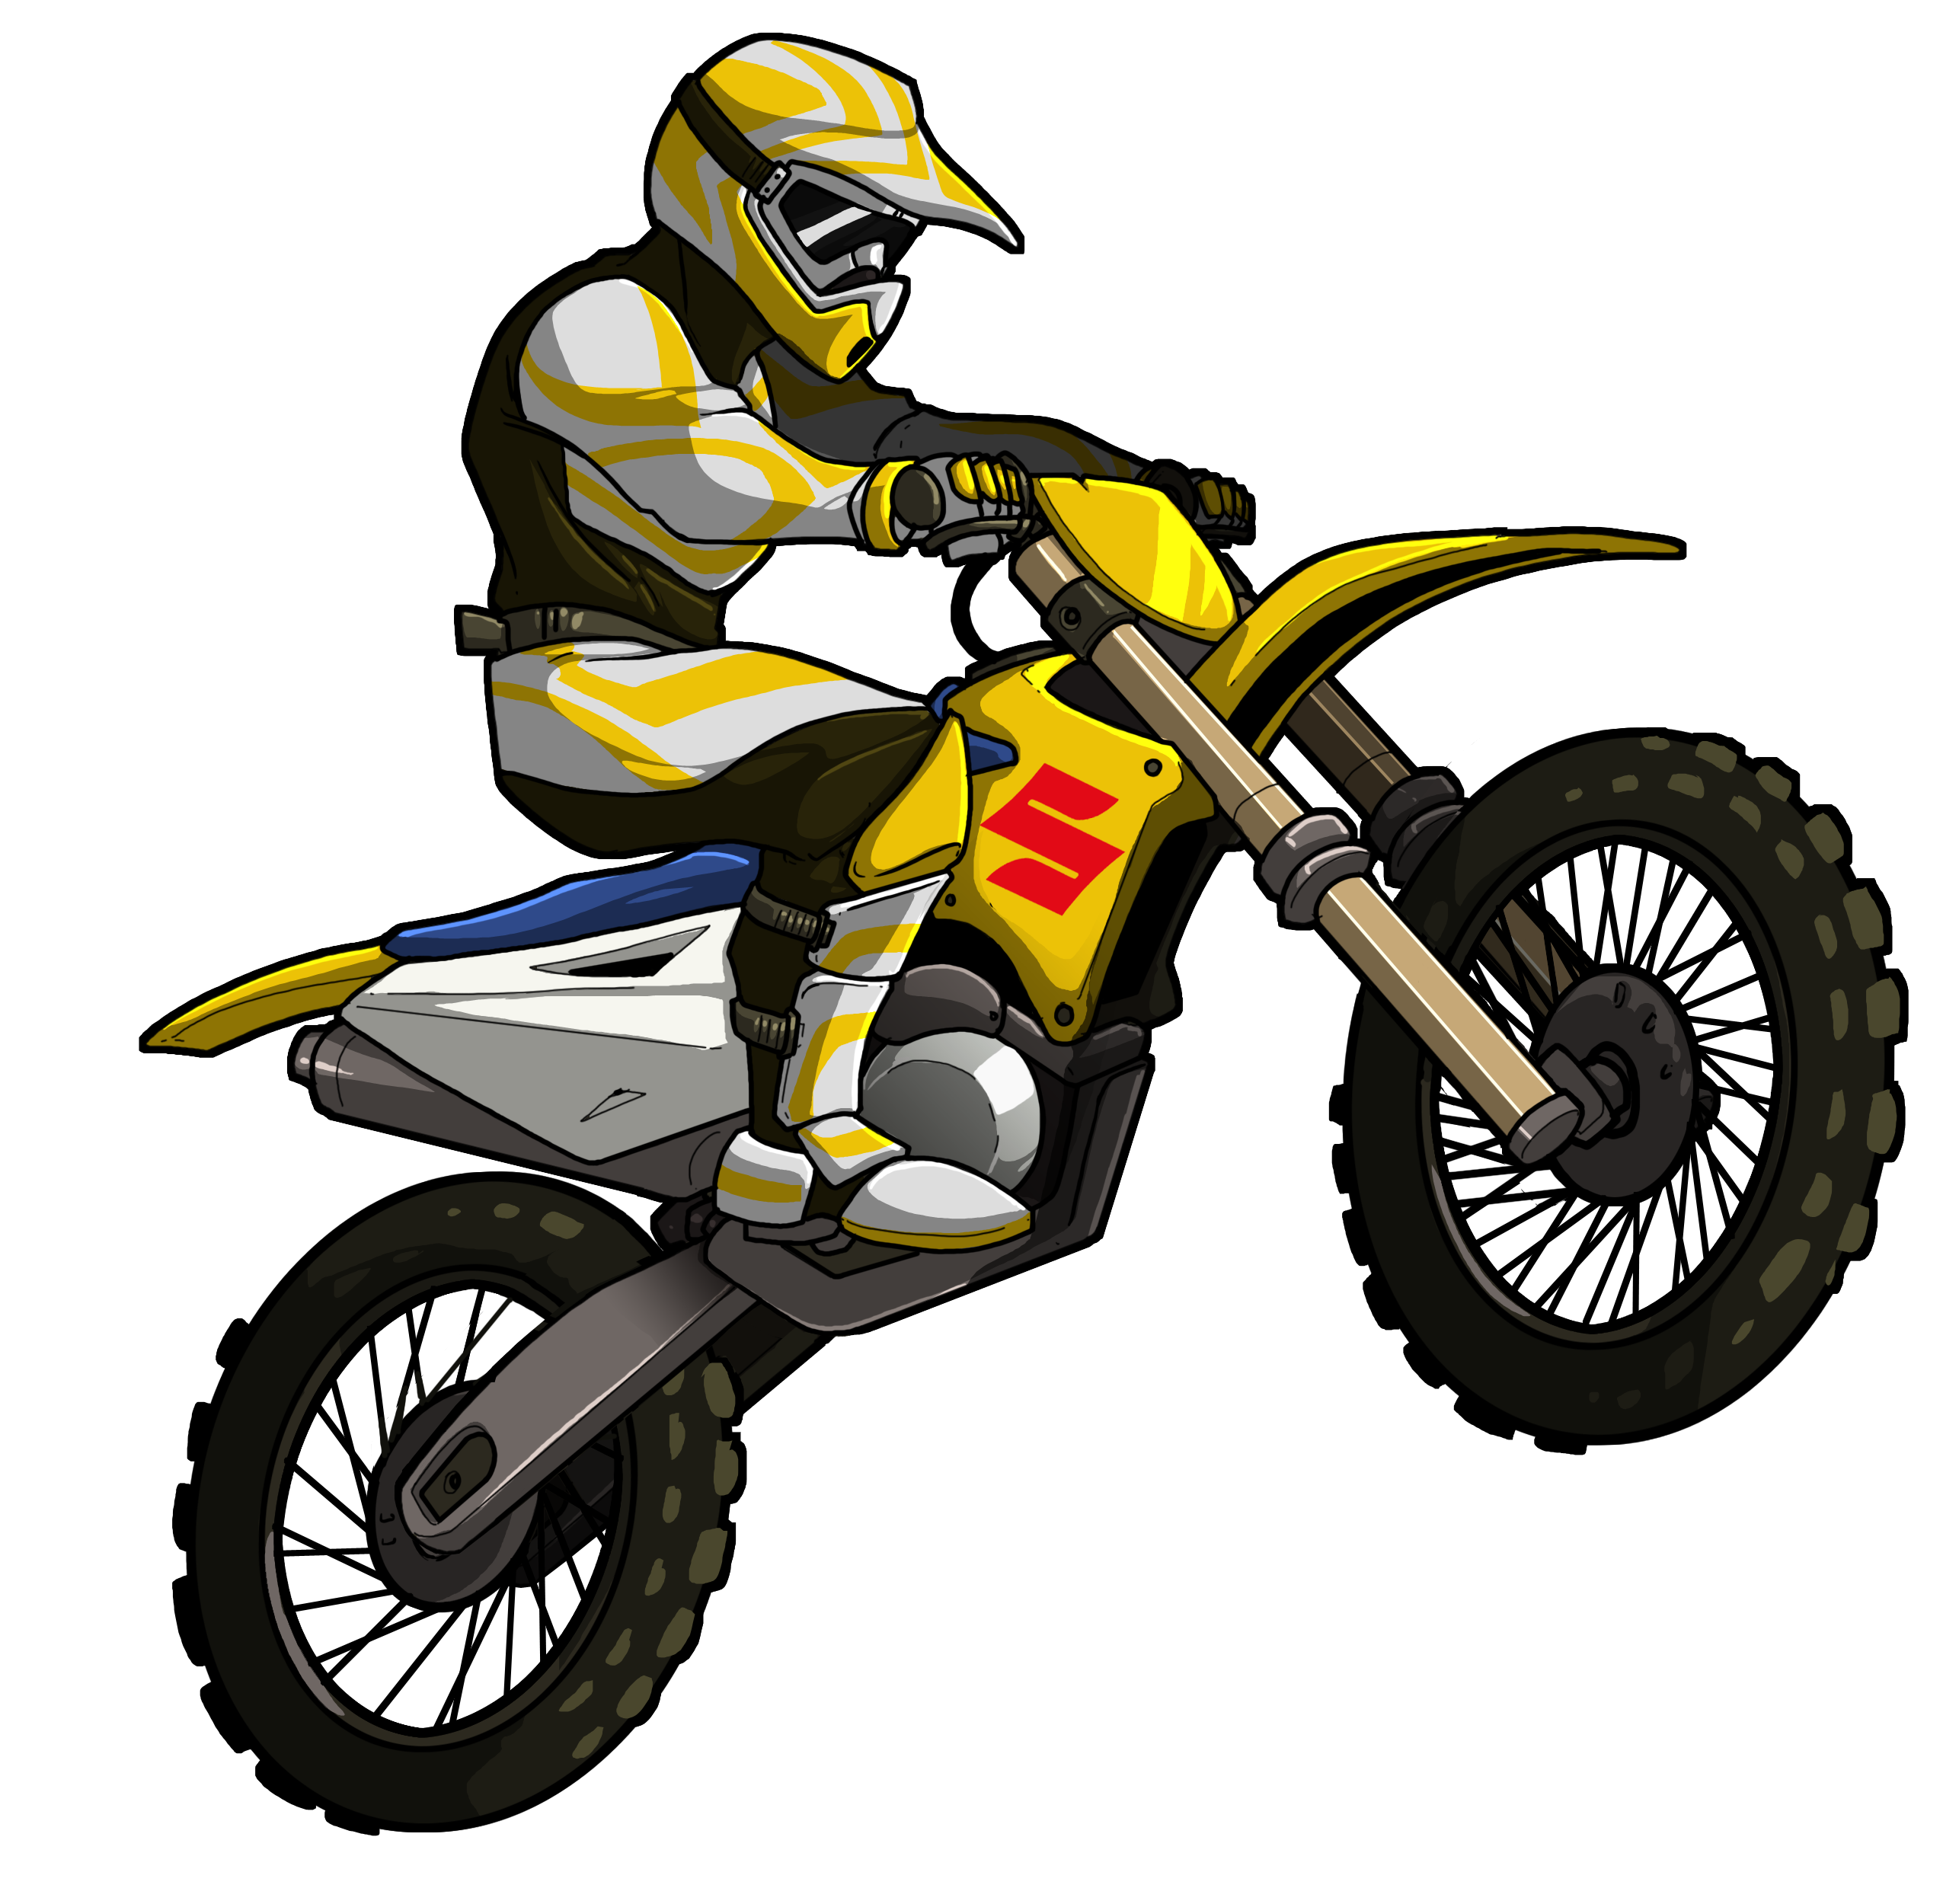 Dirt Bike Png Hd Transparent Dirt Bike Hd Png Images Pluspng